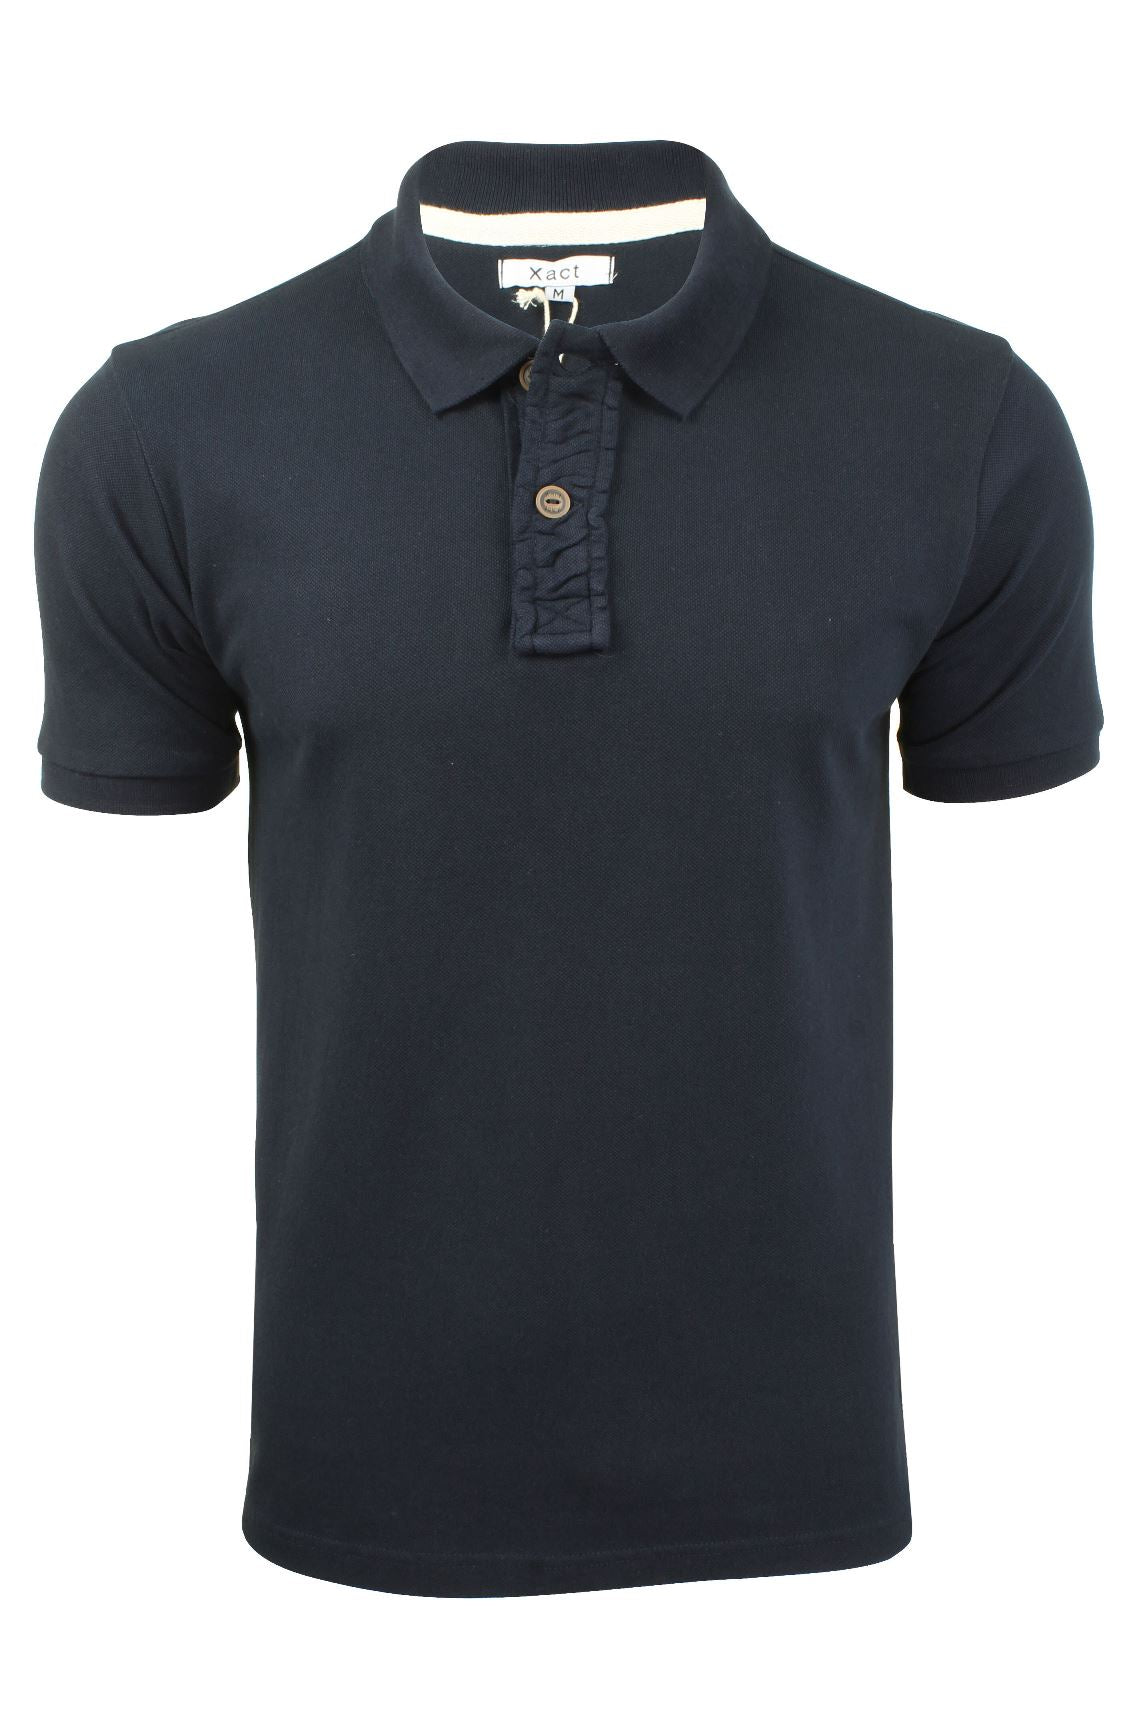 Mens Pique Polo T-Shirt by Xact Short Sleeved Ruched Placket Cotton Rich-Main Image